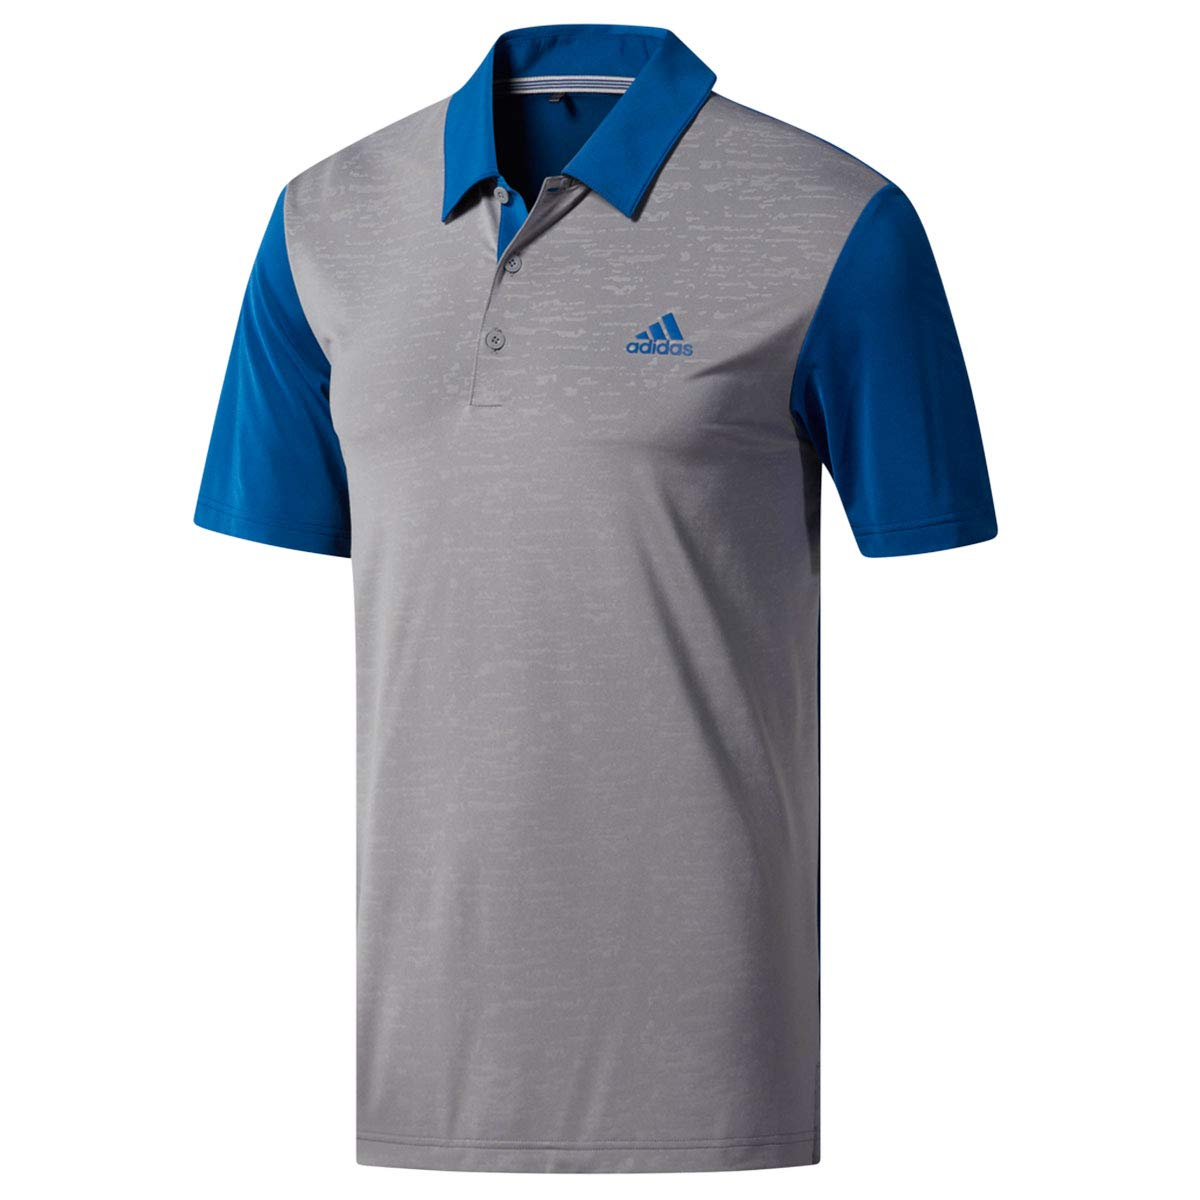 08188140 Adidas Ultimate365 Camo-Embossed Polo - Collegiate Navy/Blue:  Amazon.com.au: Sports, Fitness & Outdoors